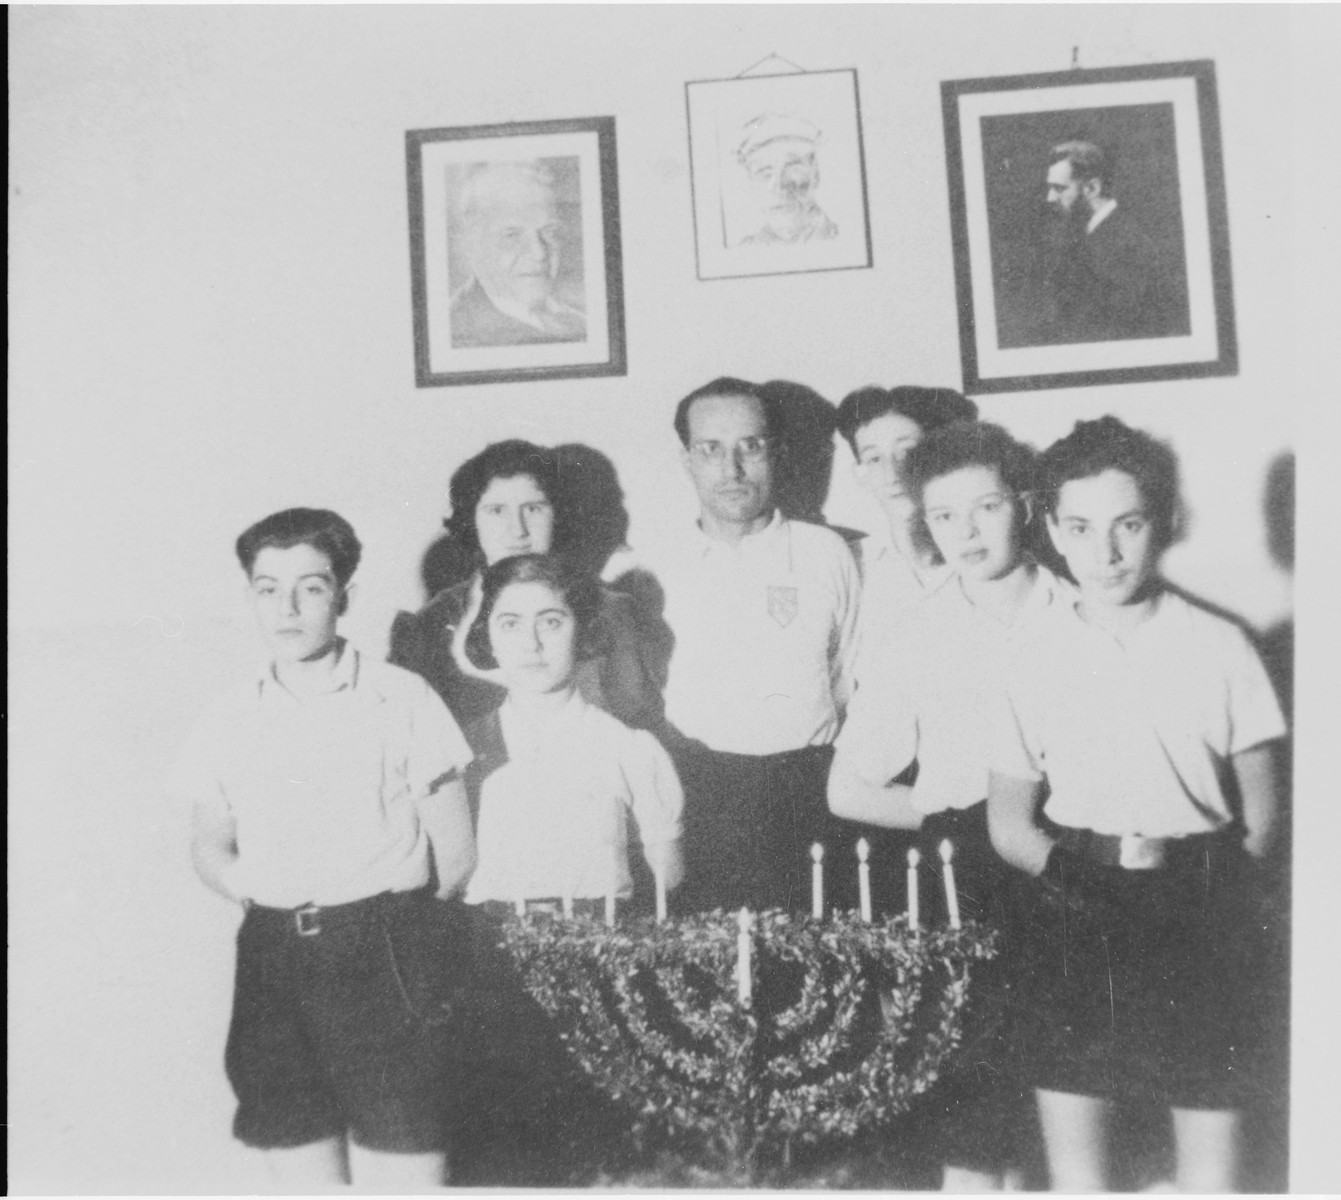 Jizchak Schwersenz (center) poses with some of his students during a Hanukkah celebration at the Youth Aliyah school in Berlin.